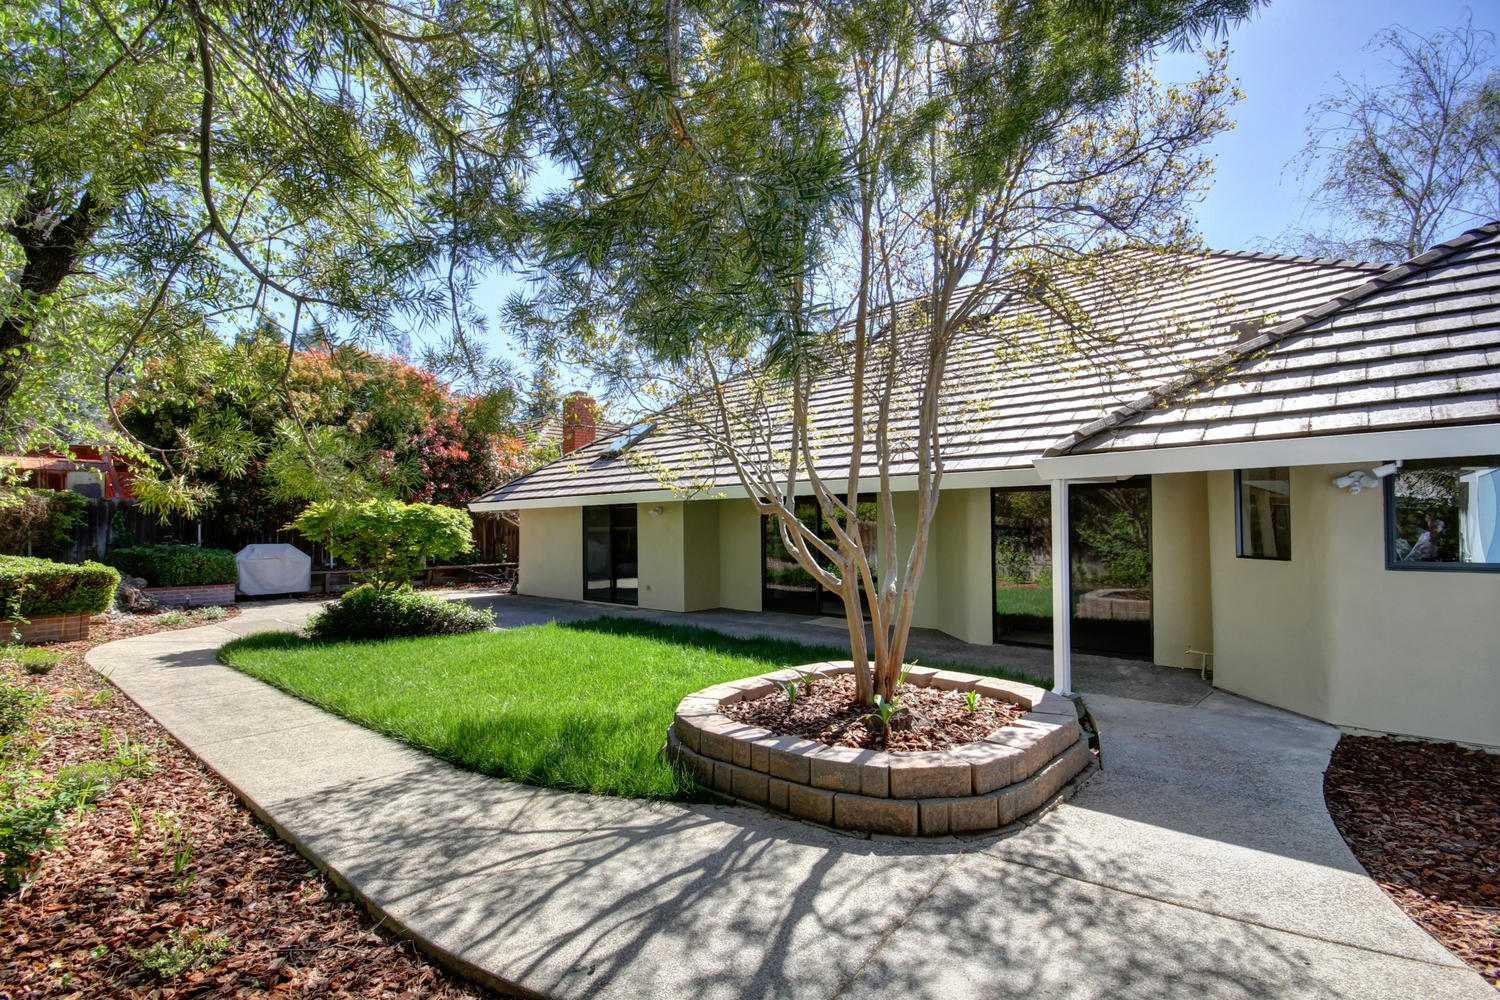 1105 Nob Hill Ct Roseville CA-large-036-36-36-1500x1000-72dpi